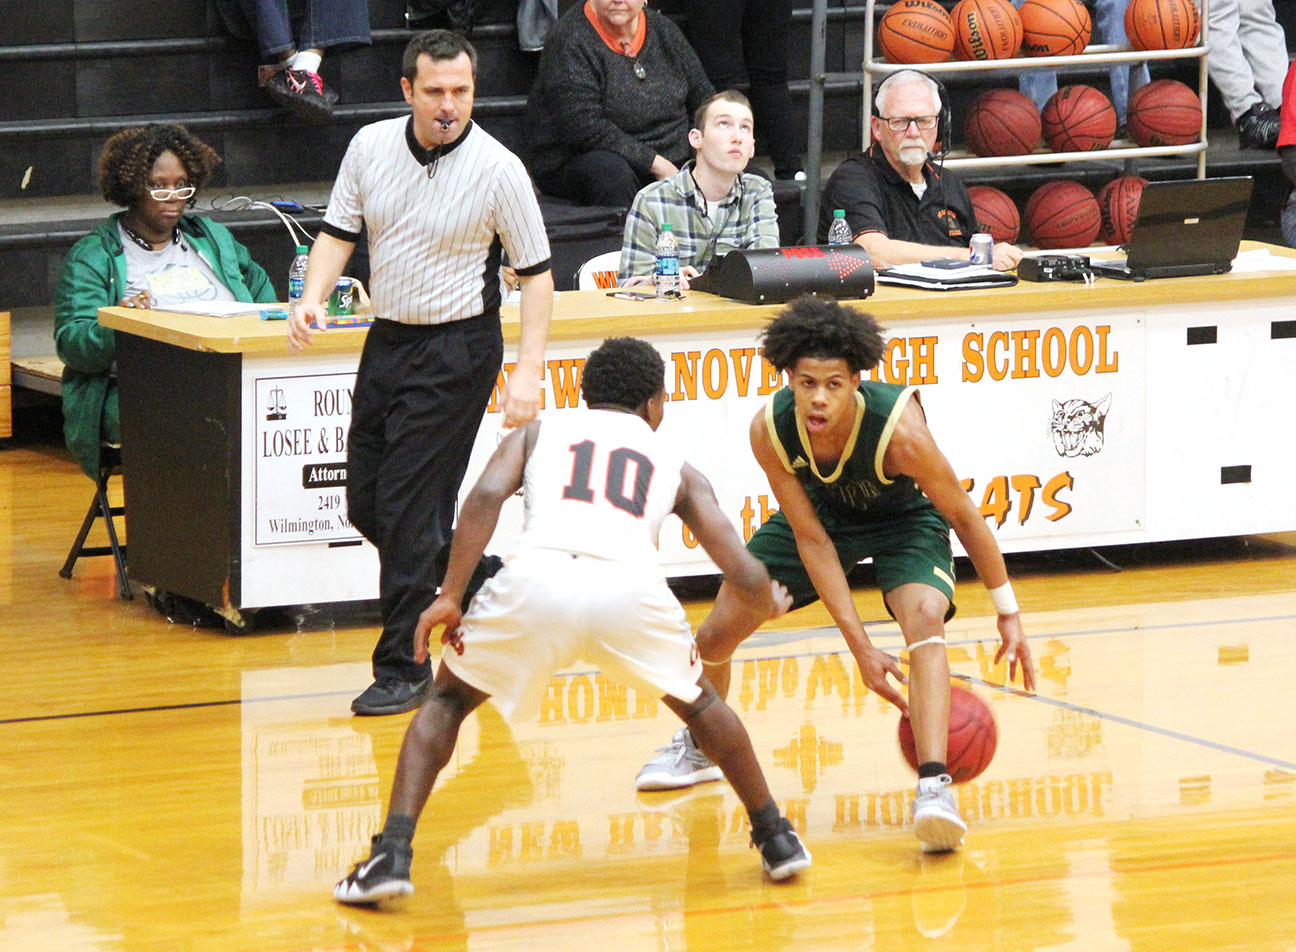 Kinston junior point guard Isaac Parson goes between his legs against